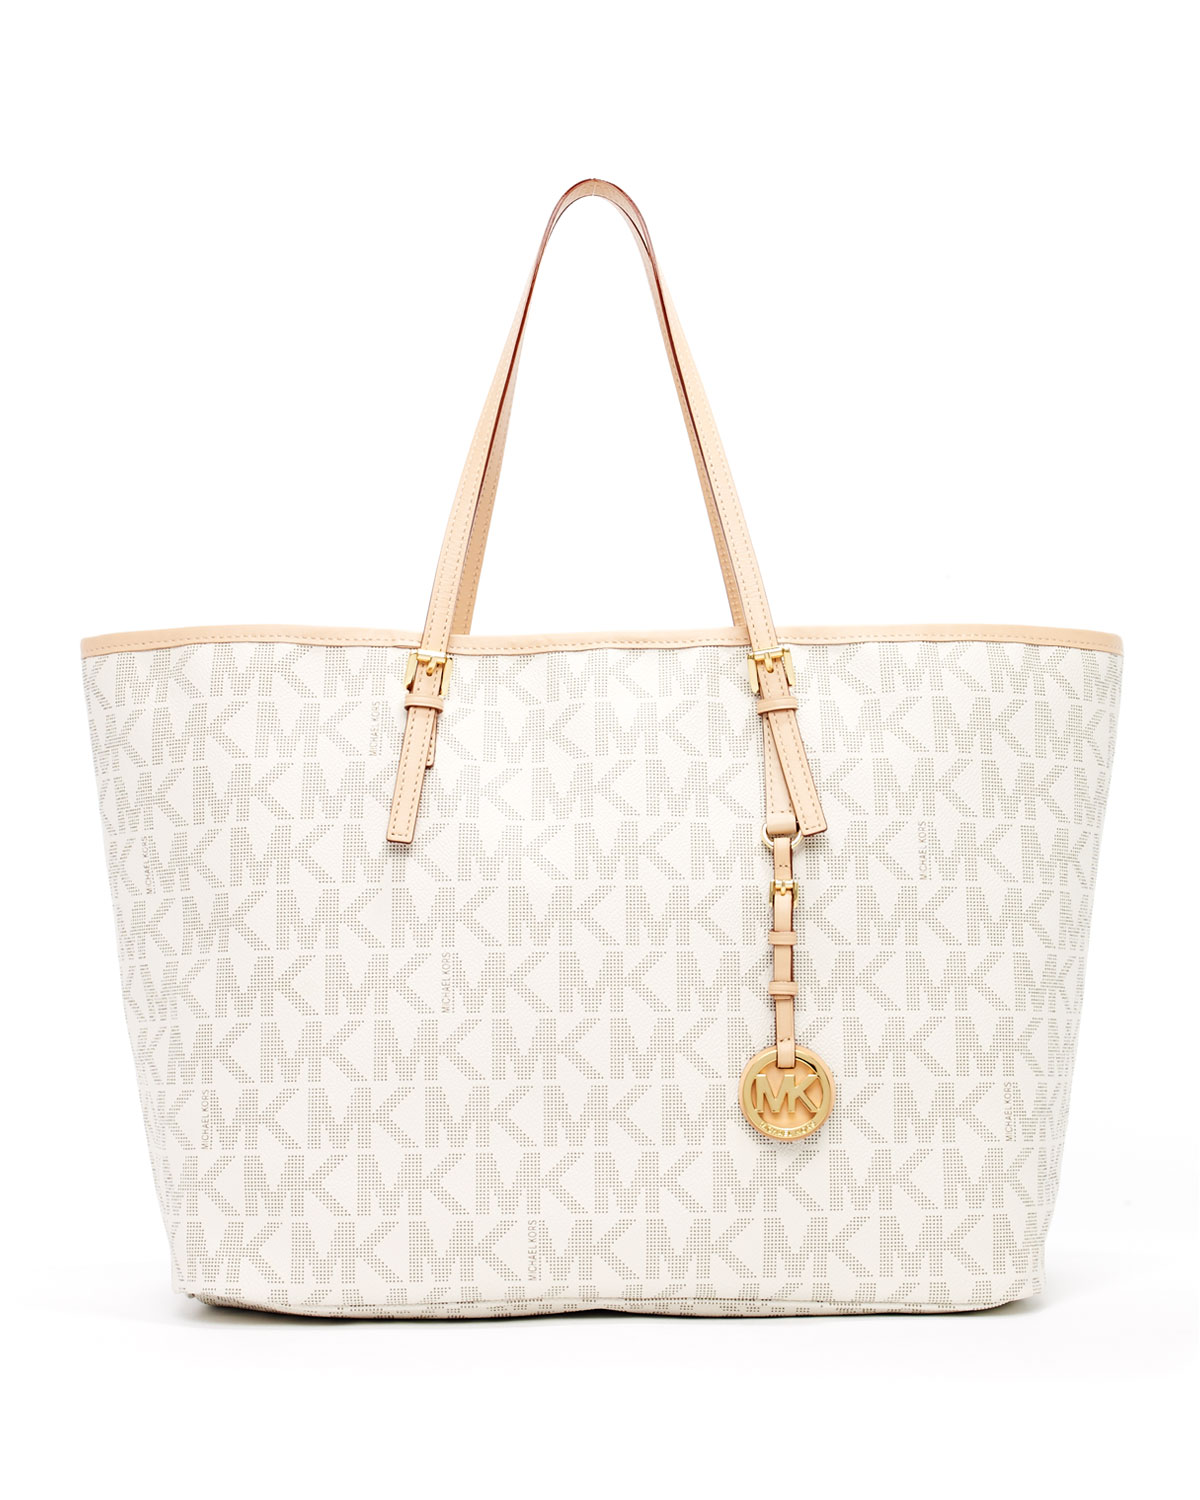 Lyst - MICHAEL Michael Kors Jet Set Logo Medium Travel Tote Vanilla ... deb6f76980